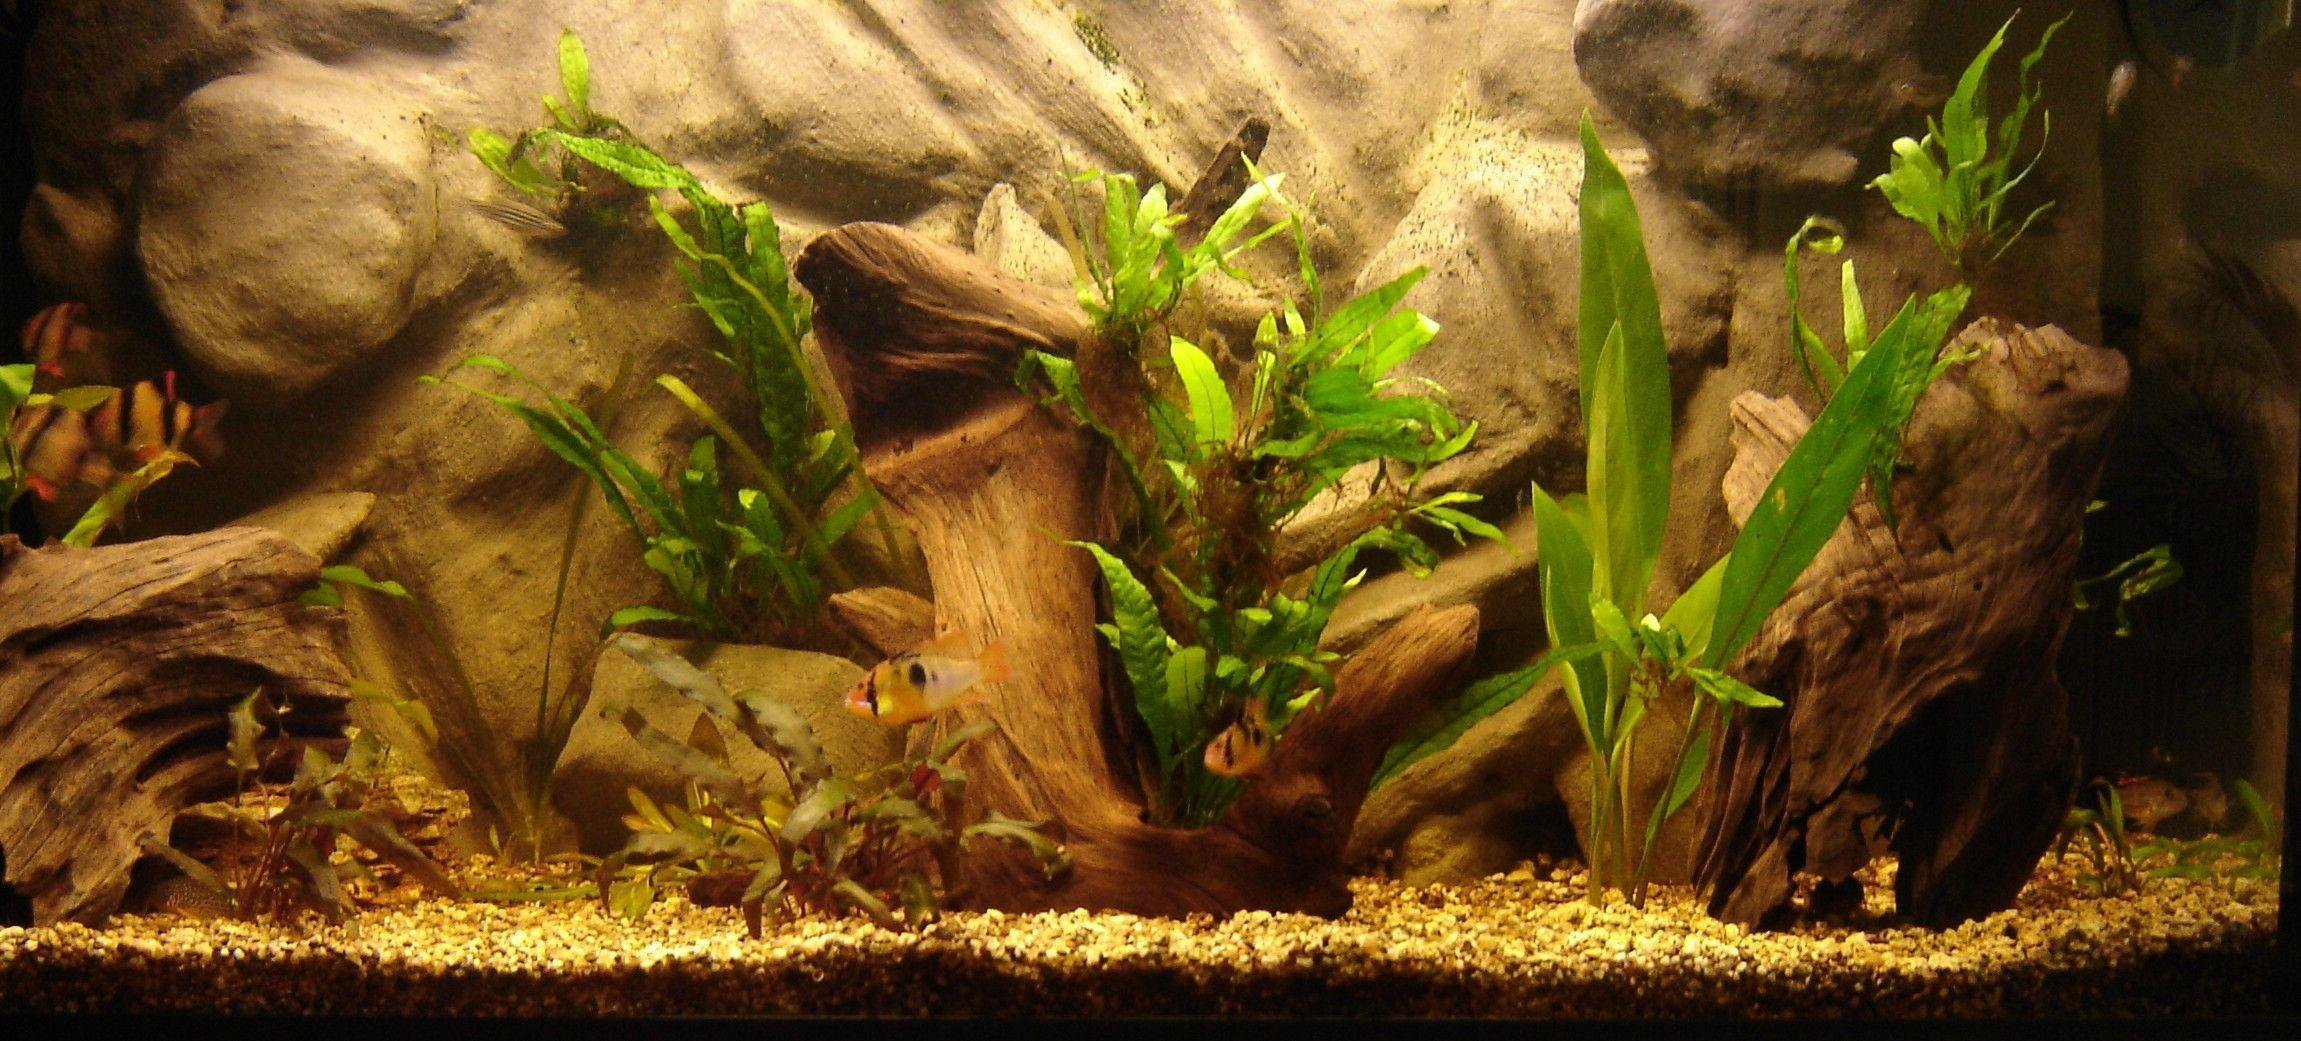 Aquarium Backgrounds 16 Desktop Background | WallFortuner.Com